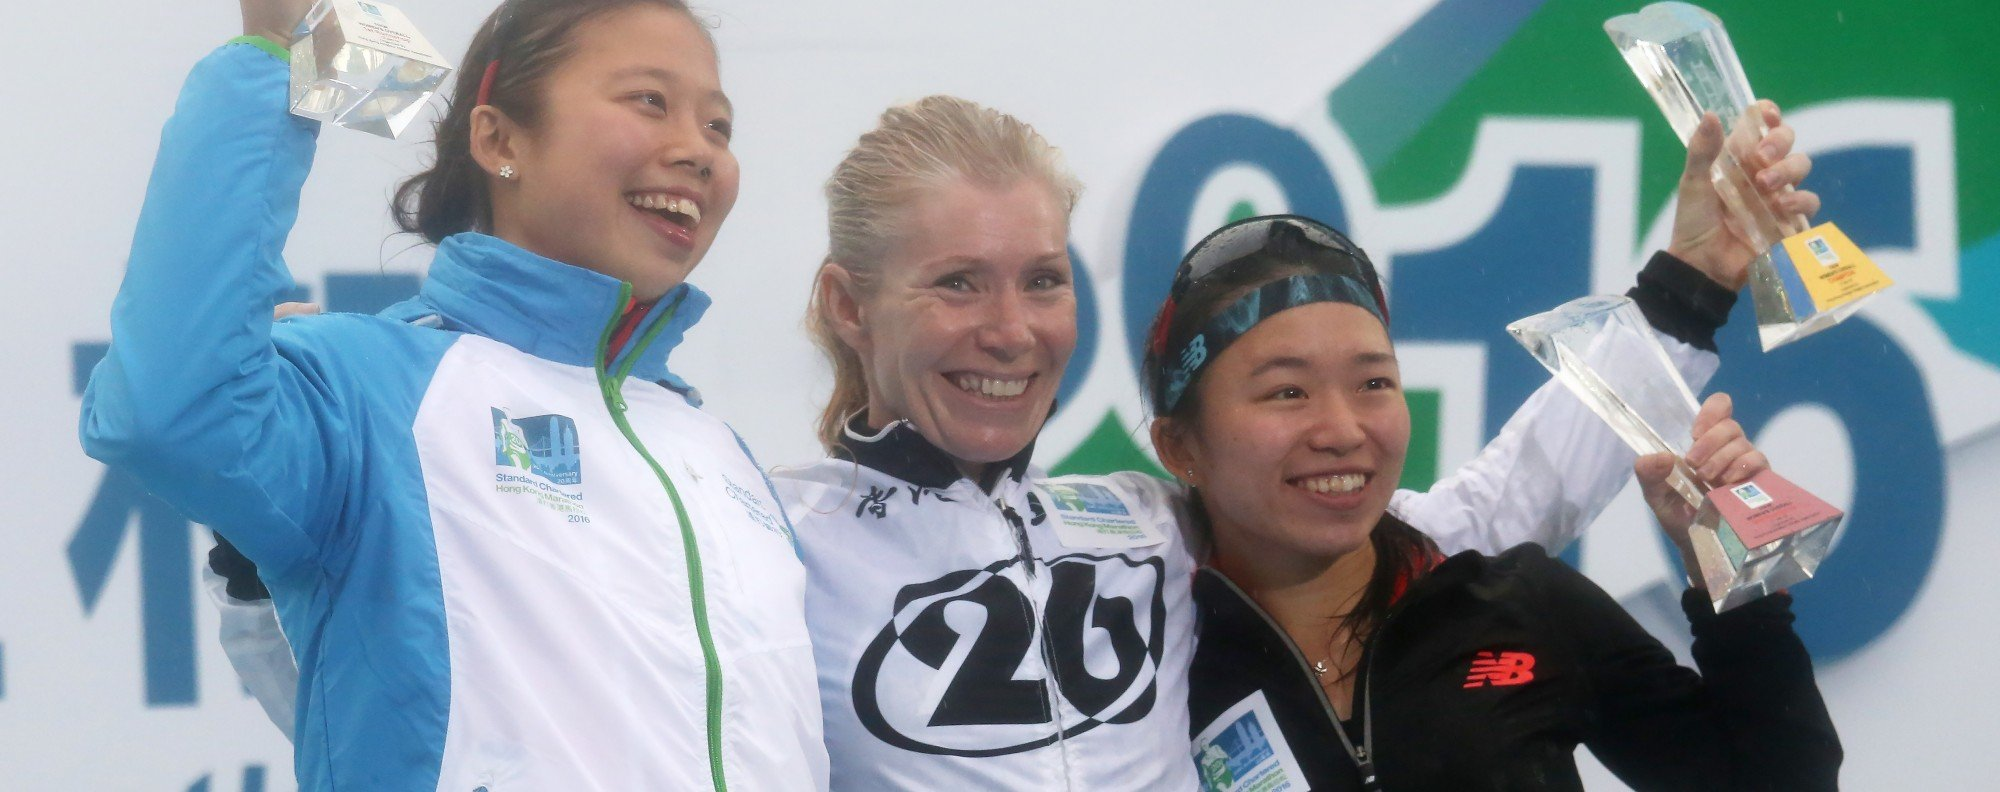 Kate Rutherford (centre) won the women's 10km Challenge at the 2016 Hong Kong Marathon – she is a triathlon coach who wants to create a pathway for more women to follow her. Photo: Nora Tam